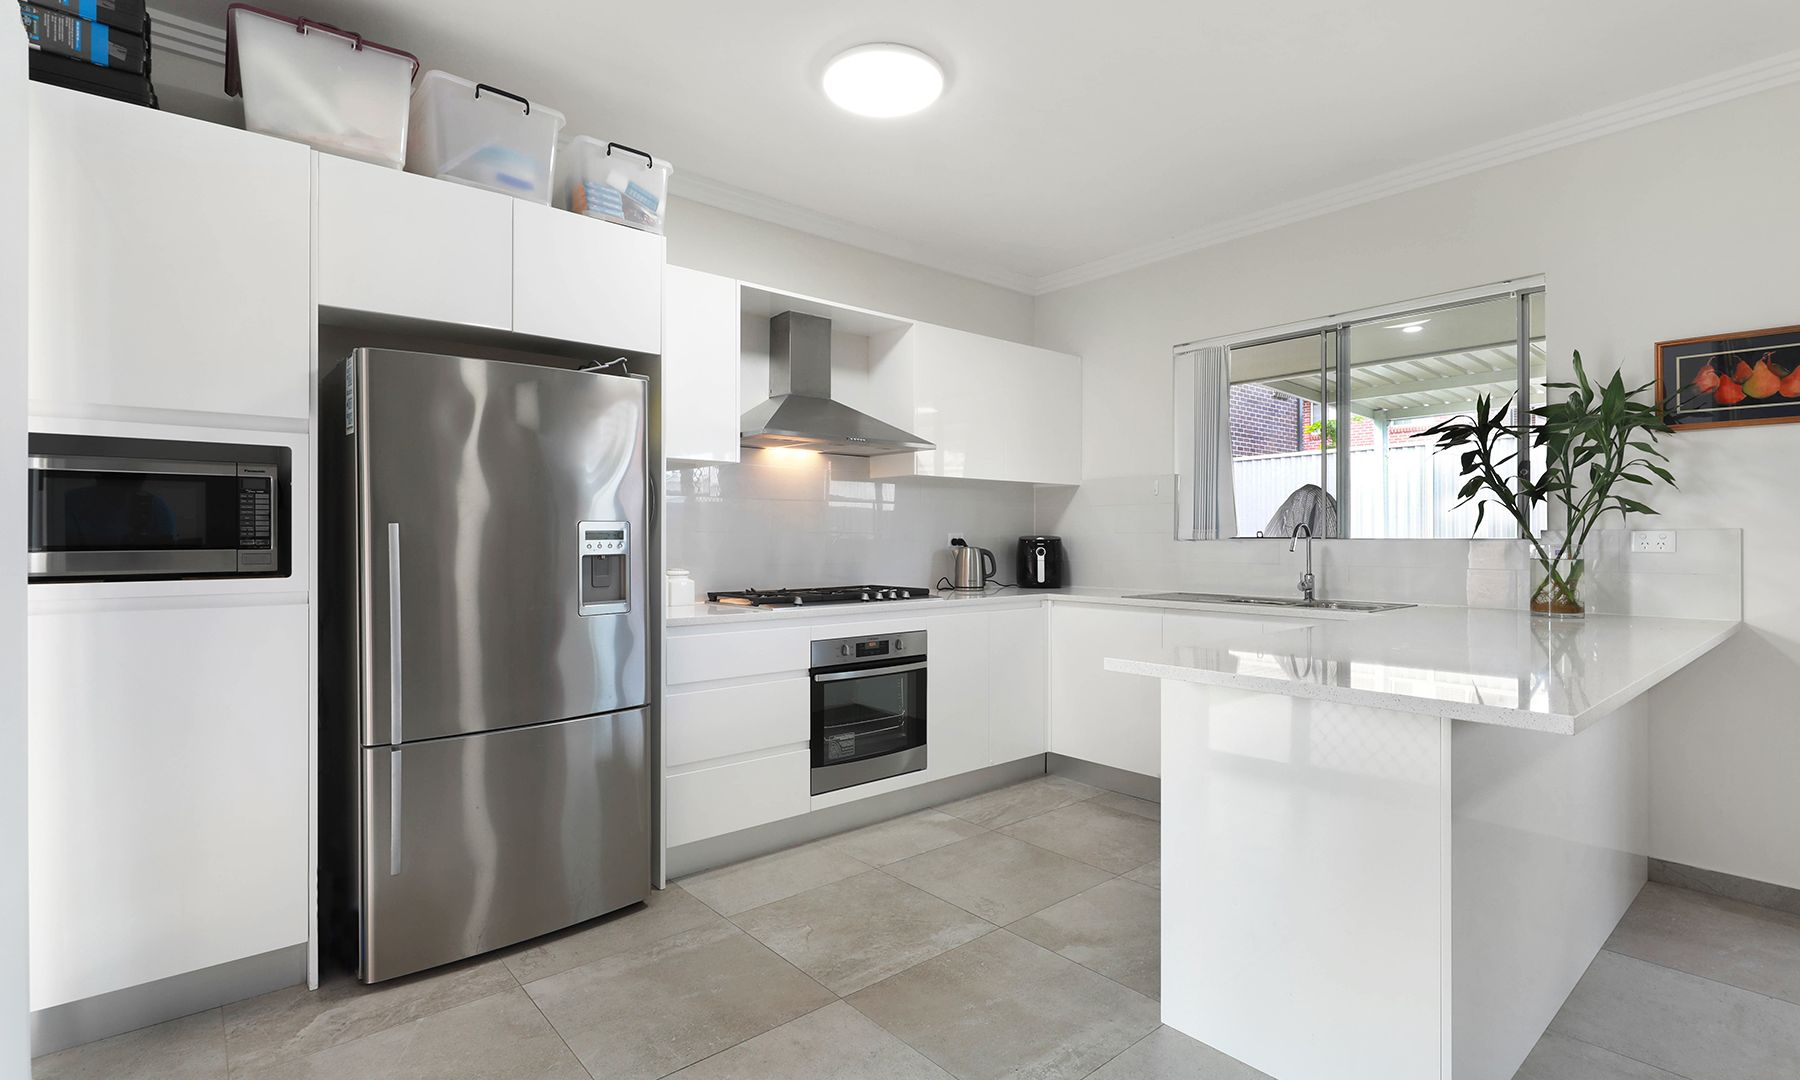 13/20 Old Glenfield Road, Casula NSW 2170, Image 2